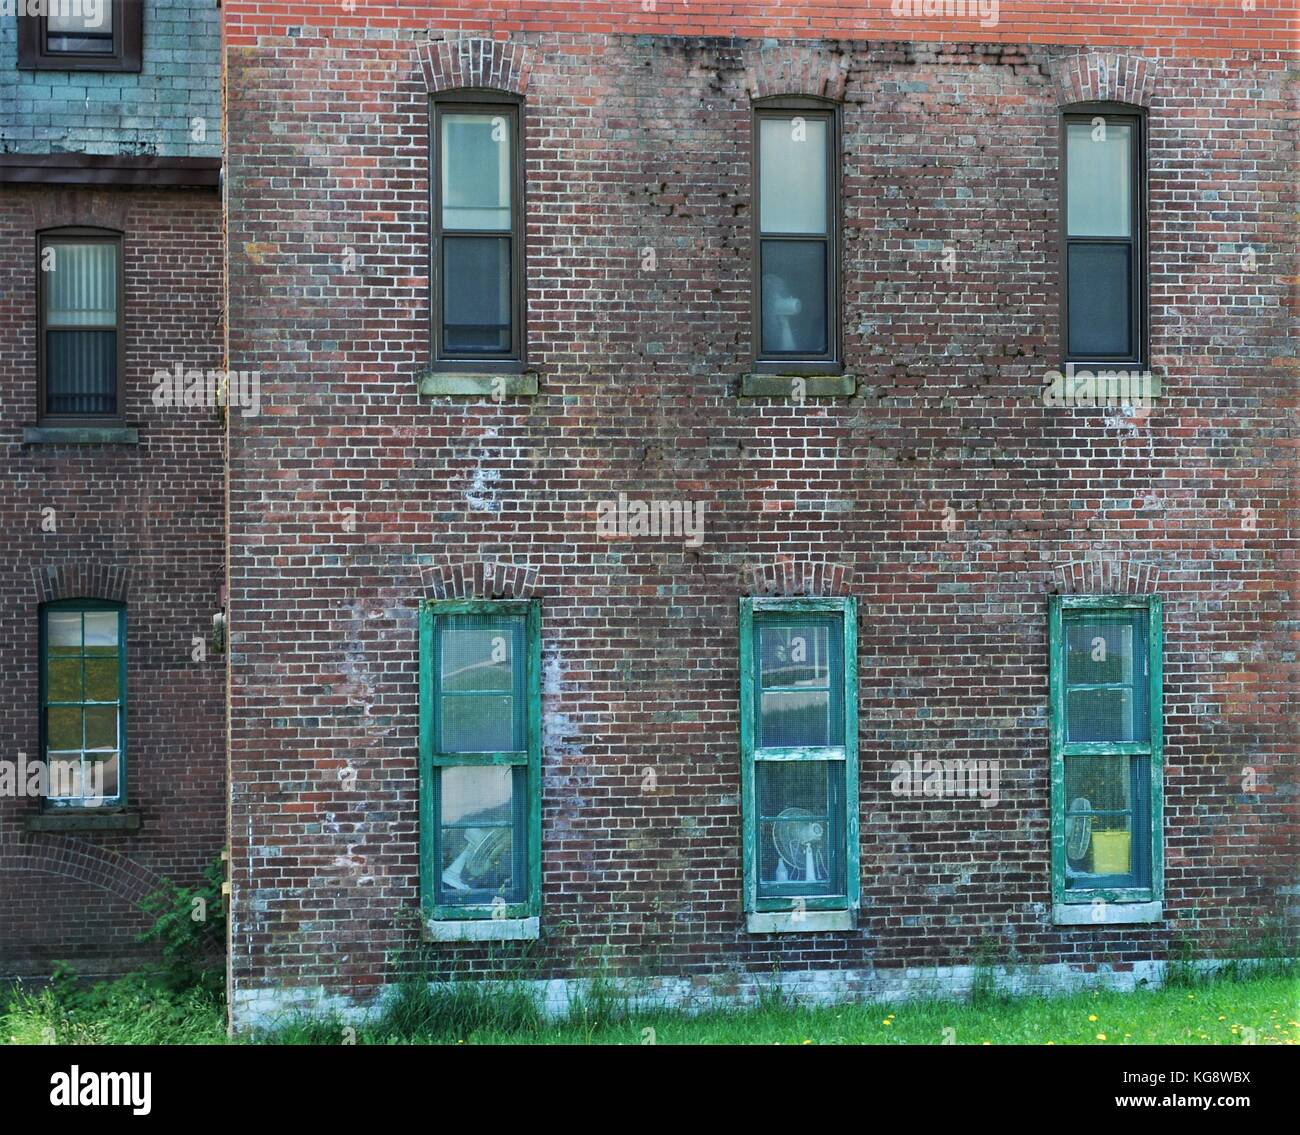 Exterior wall of old brick building, with old, wood framed windows - Stock Image